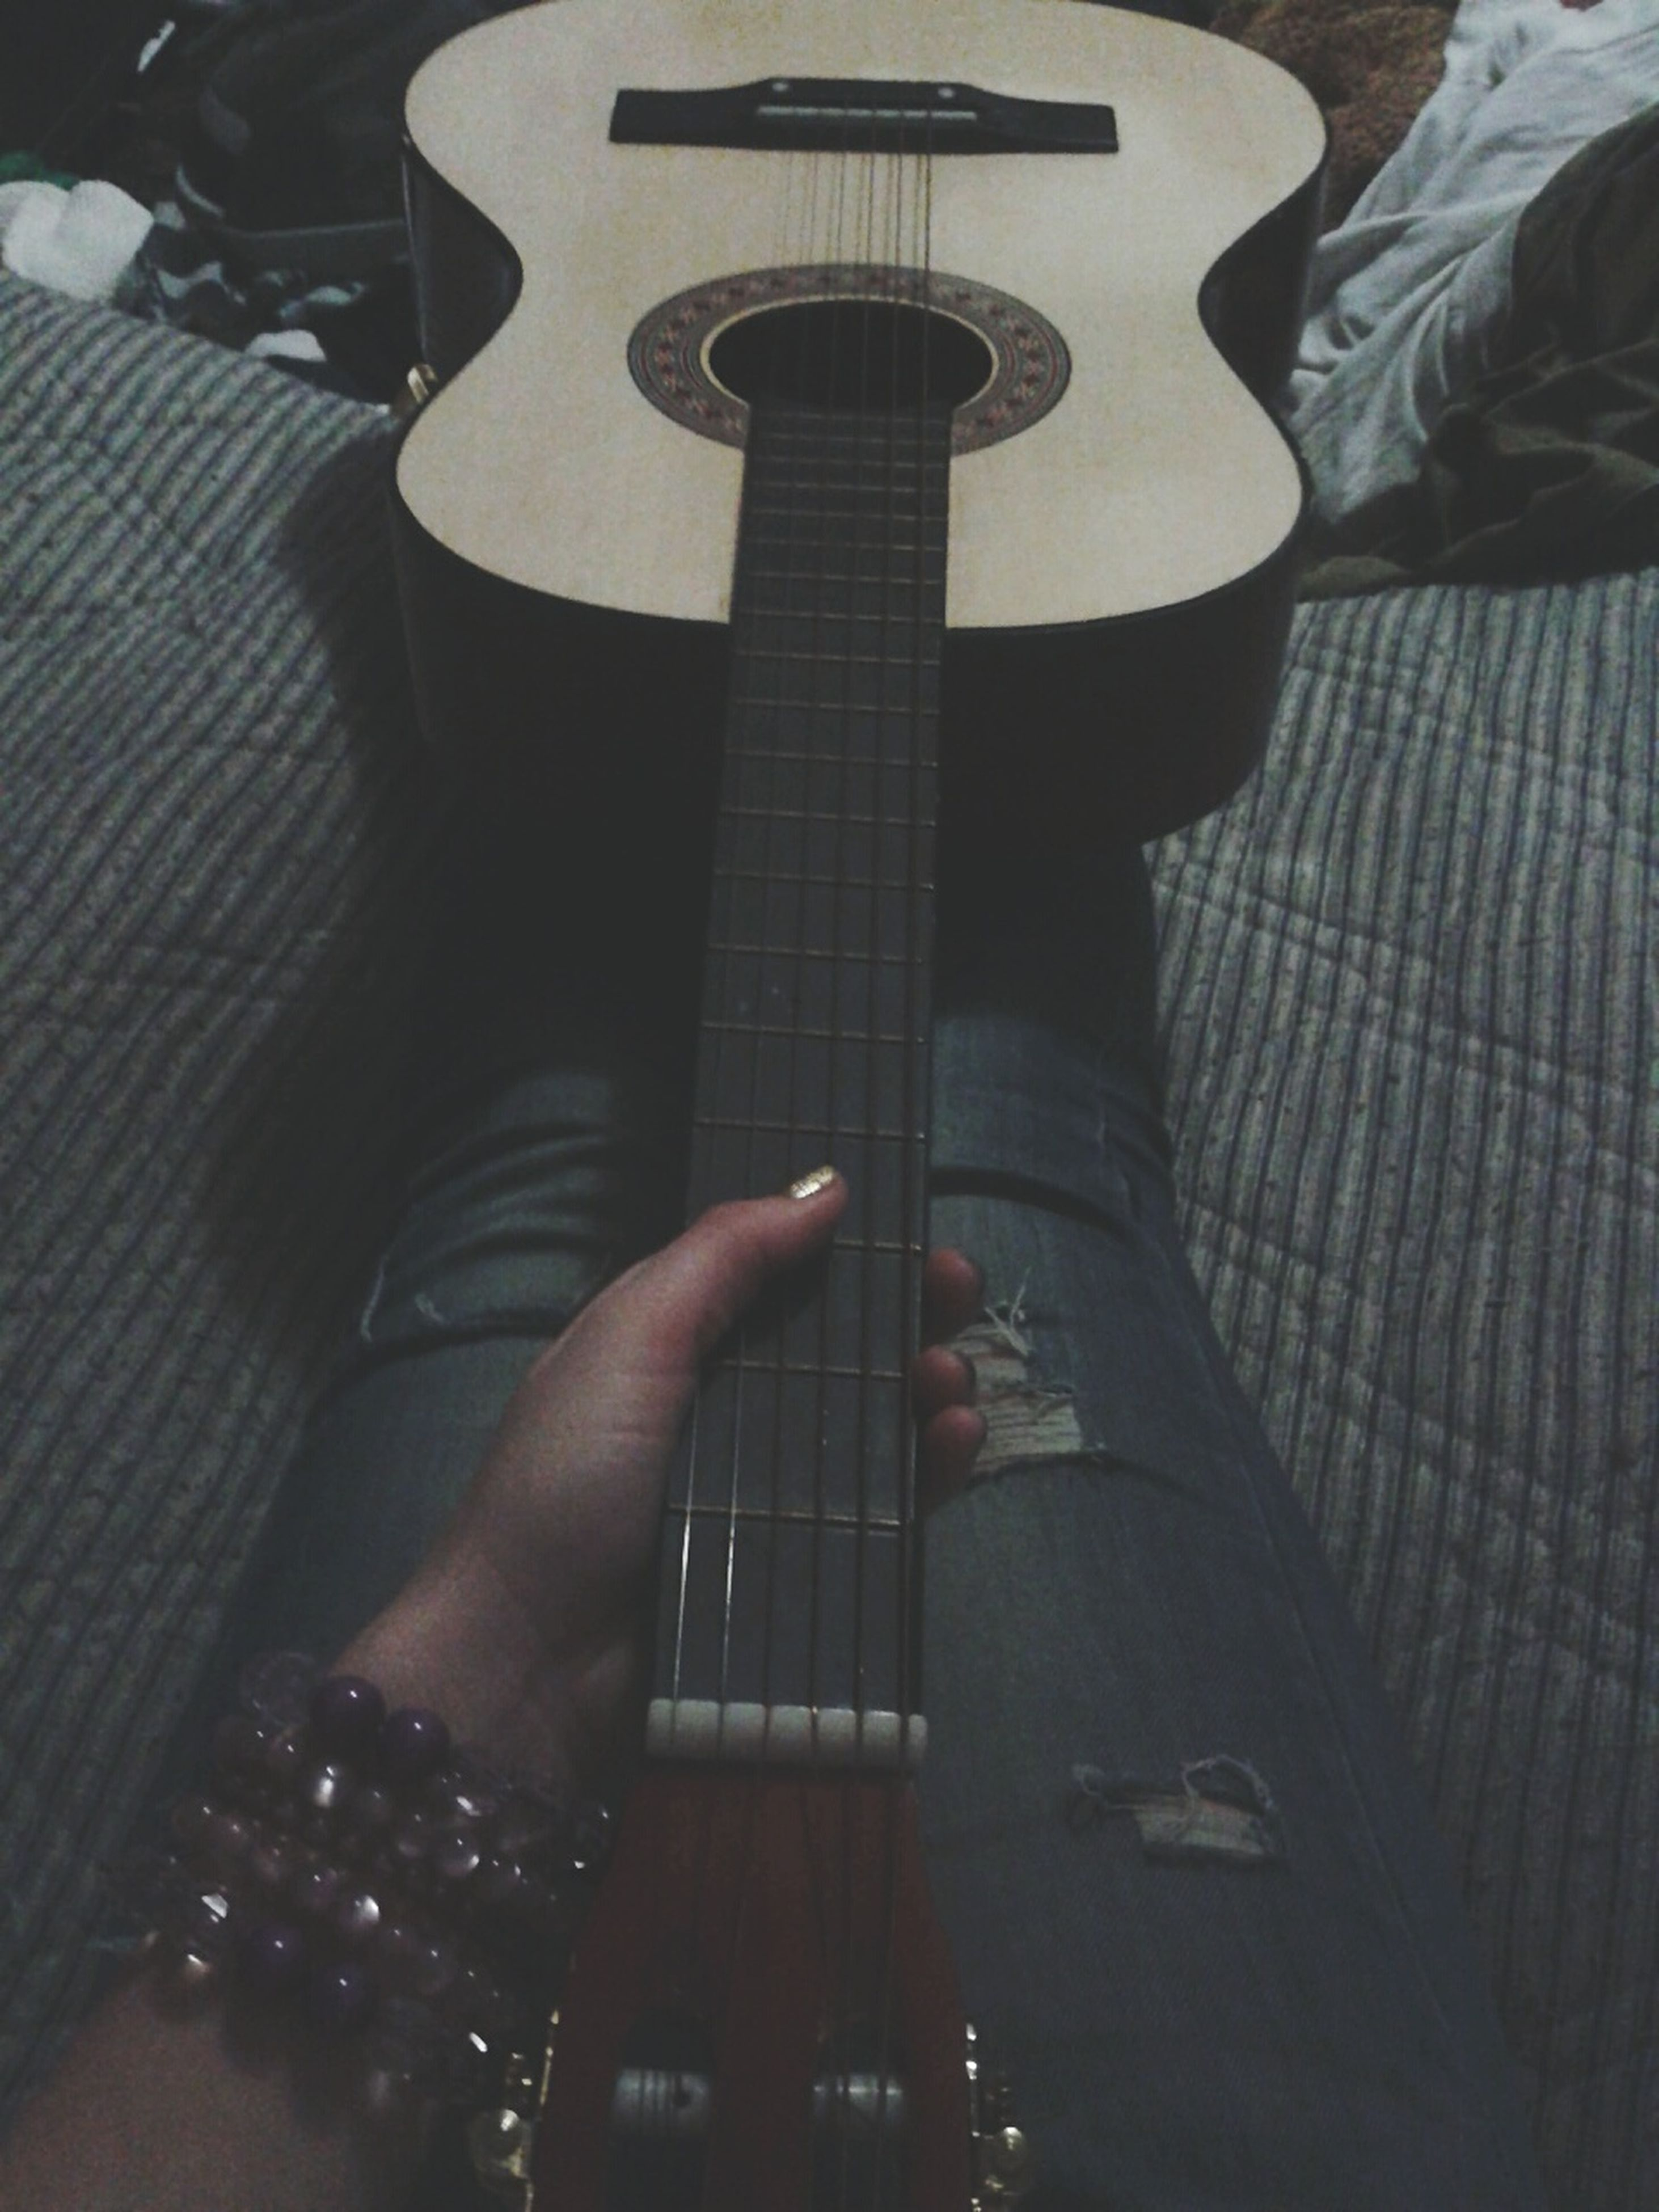 lifestyles, person, leisure activity, indoors, music, part of, men, technology, high angle view, holding, arts culture and entertainment, personal perspective, musical instrument, unrecognizable person, guitar, communication